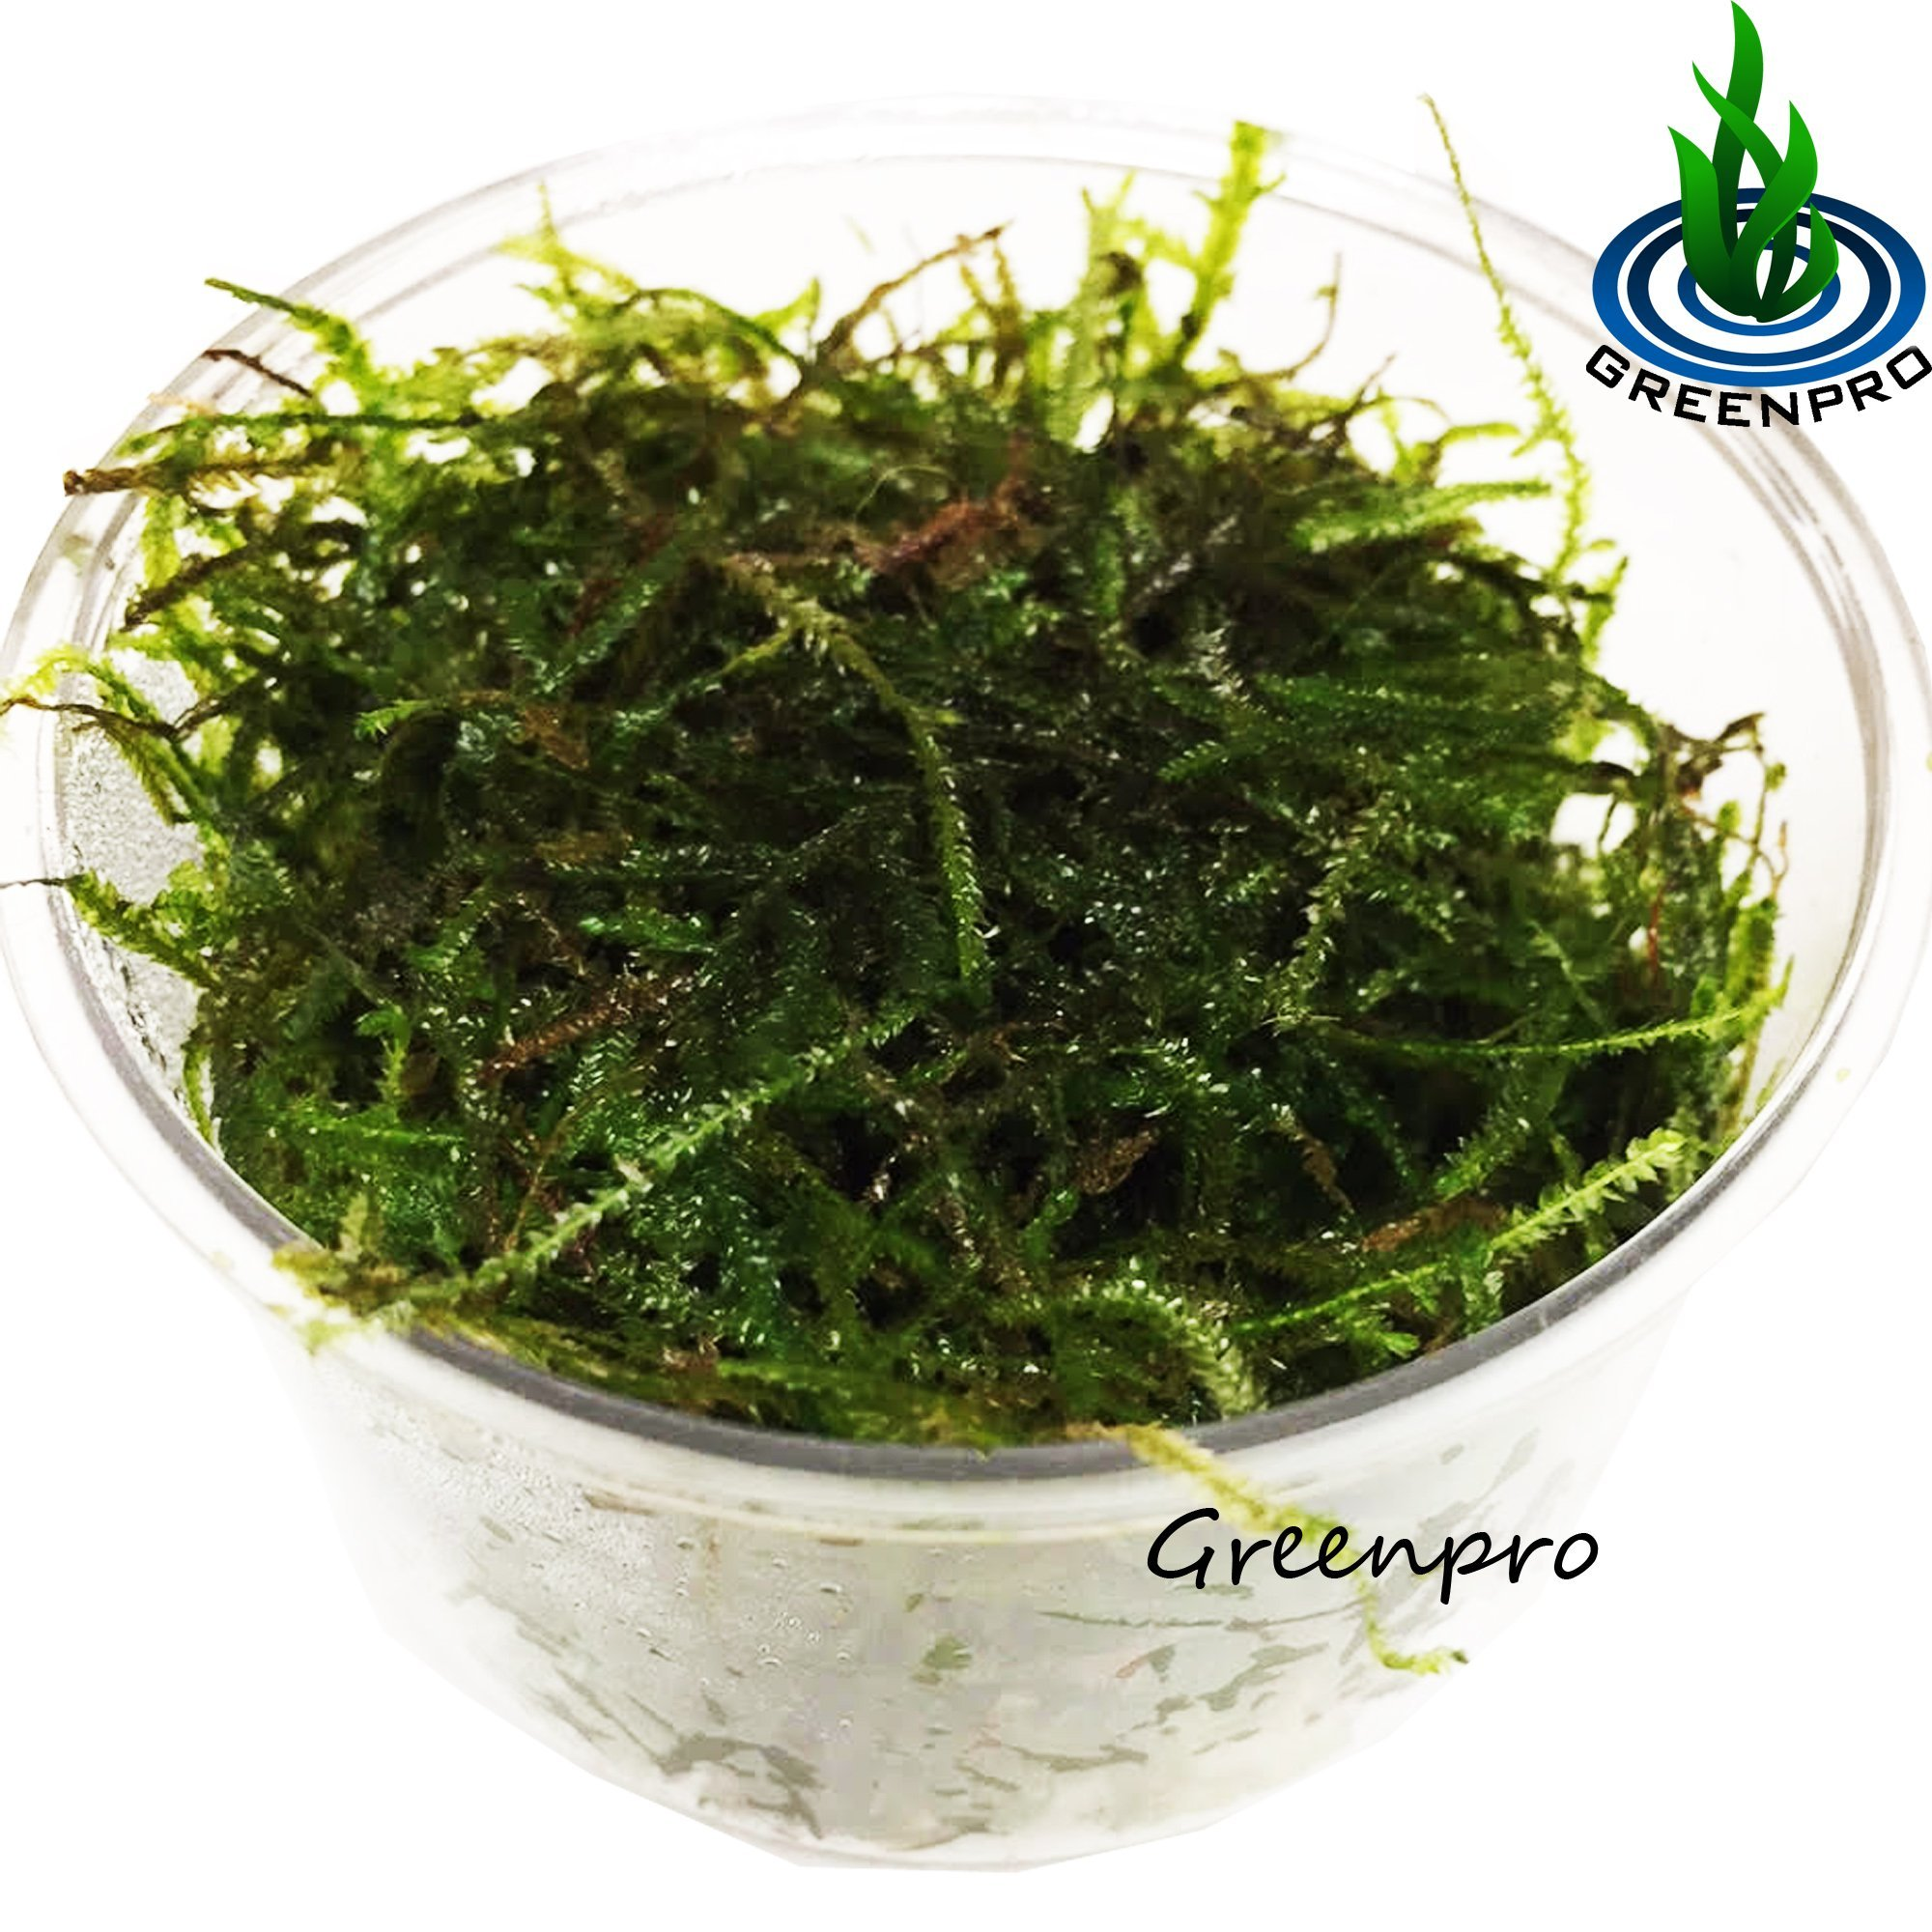 Greenpro Java Moss Live Freshwater Aquarium Plants Easy Ready to Grow